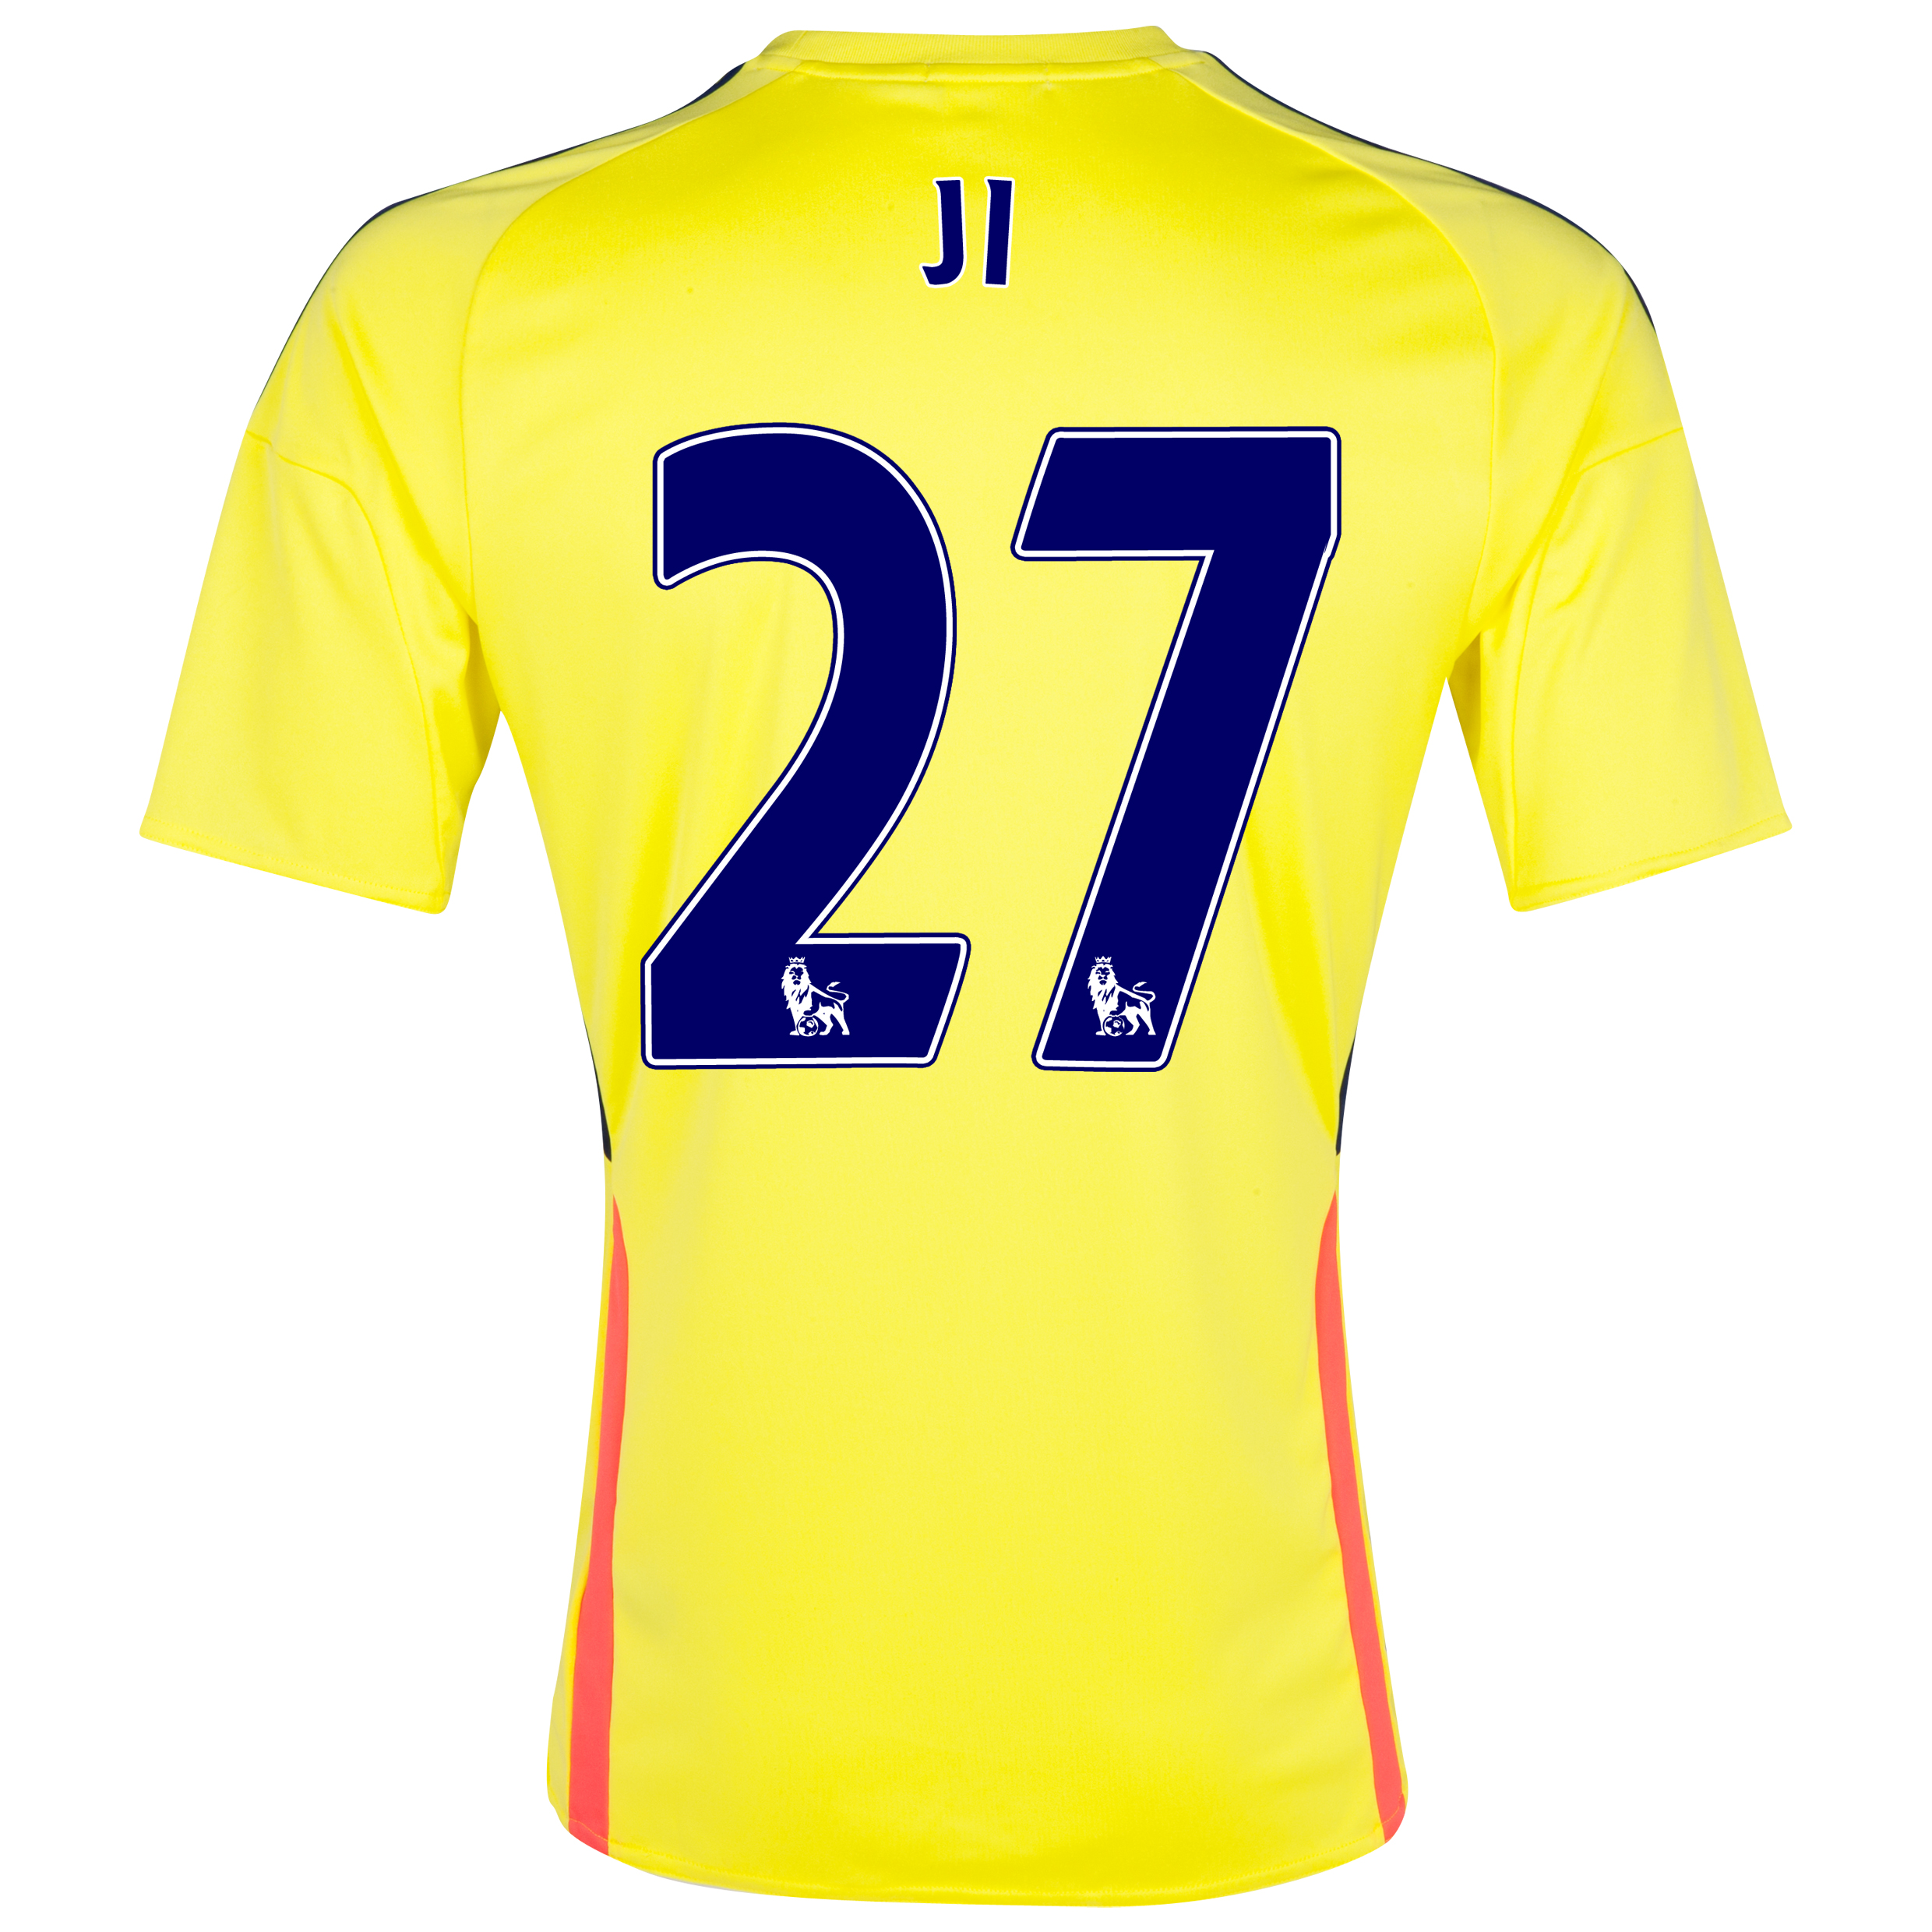 Sunderland Away Shirt 2013/14 - Junior with Ji 27 printing